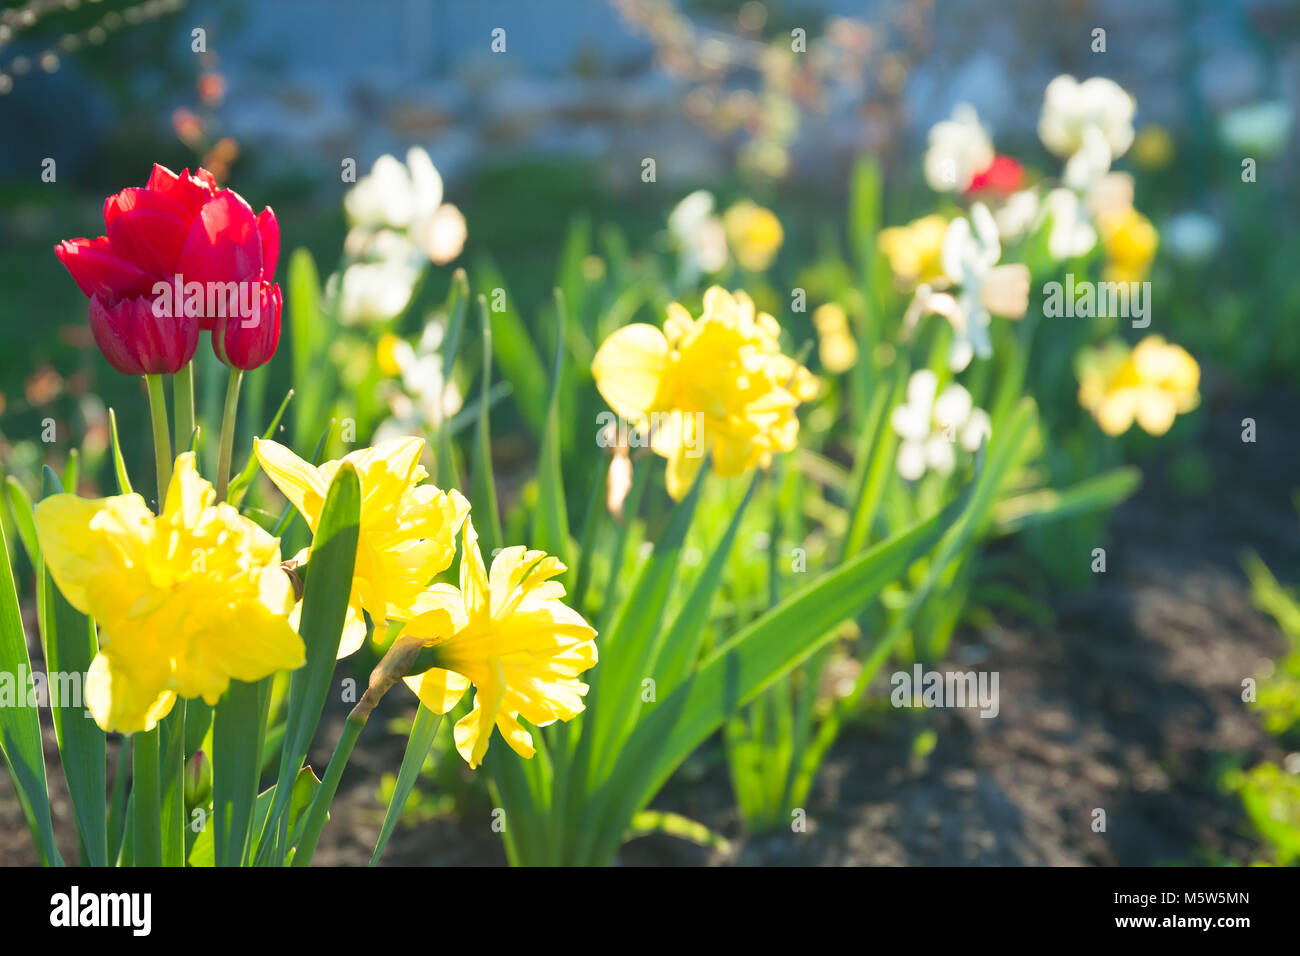 Spring flowers daffodils and tulips flowering in garden on a flower spring flowers daffodils and tulips flowering in garden on a flower bed spring landscape with blooming narcissus flowers blur background mightylinksfo